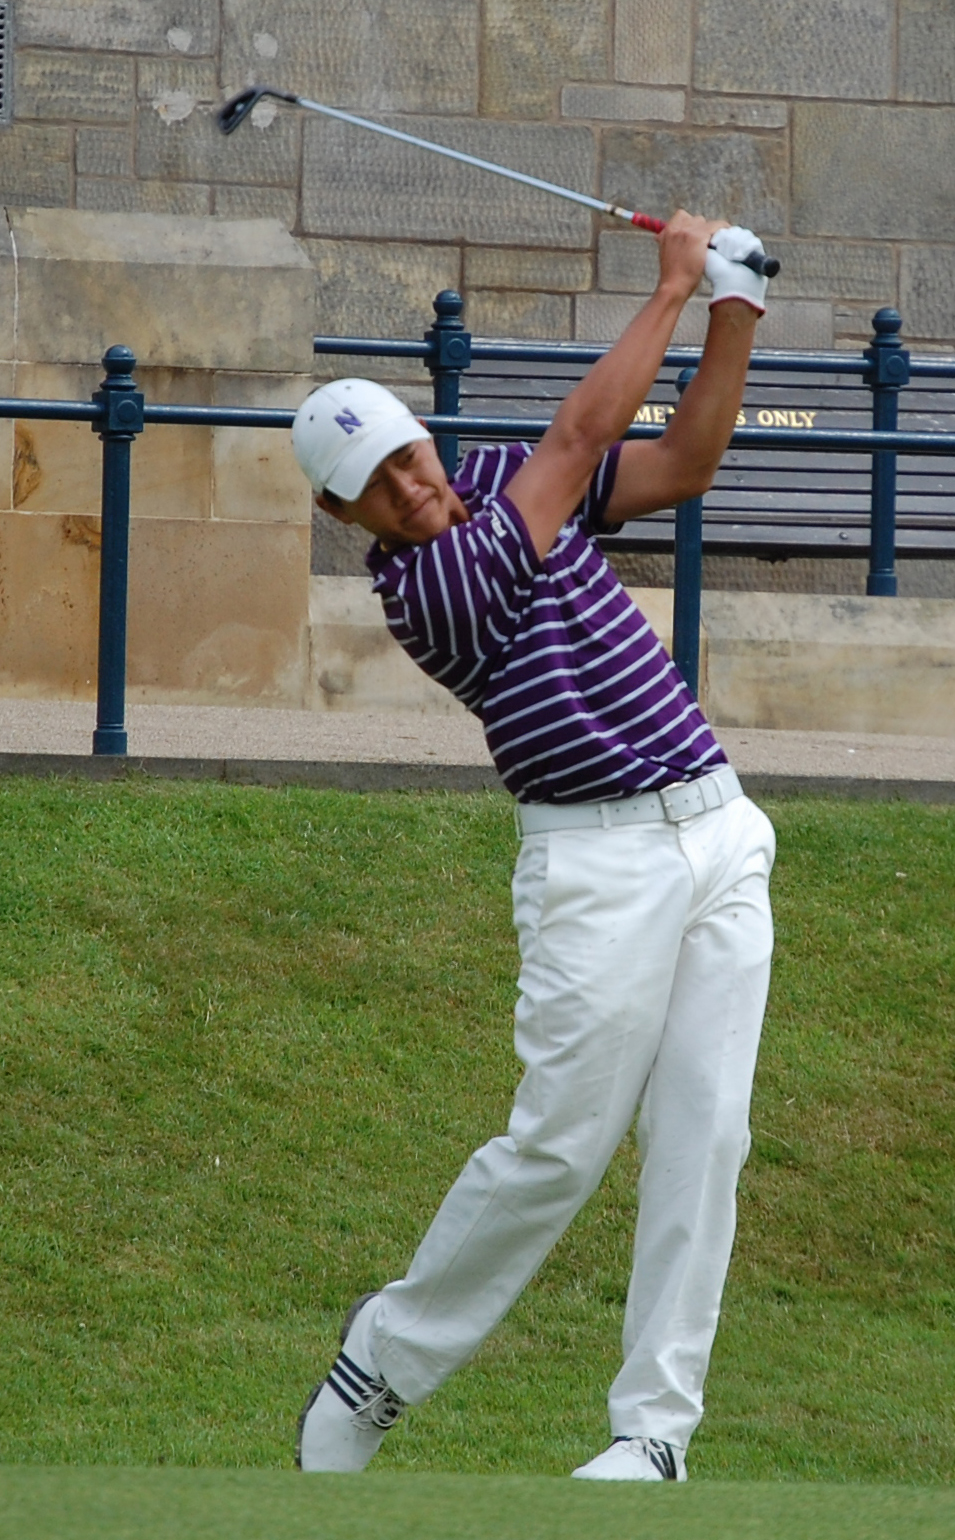 Eric Chun shot 1-under 71 in his first round at St. Andrews.